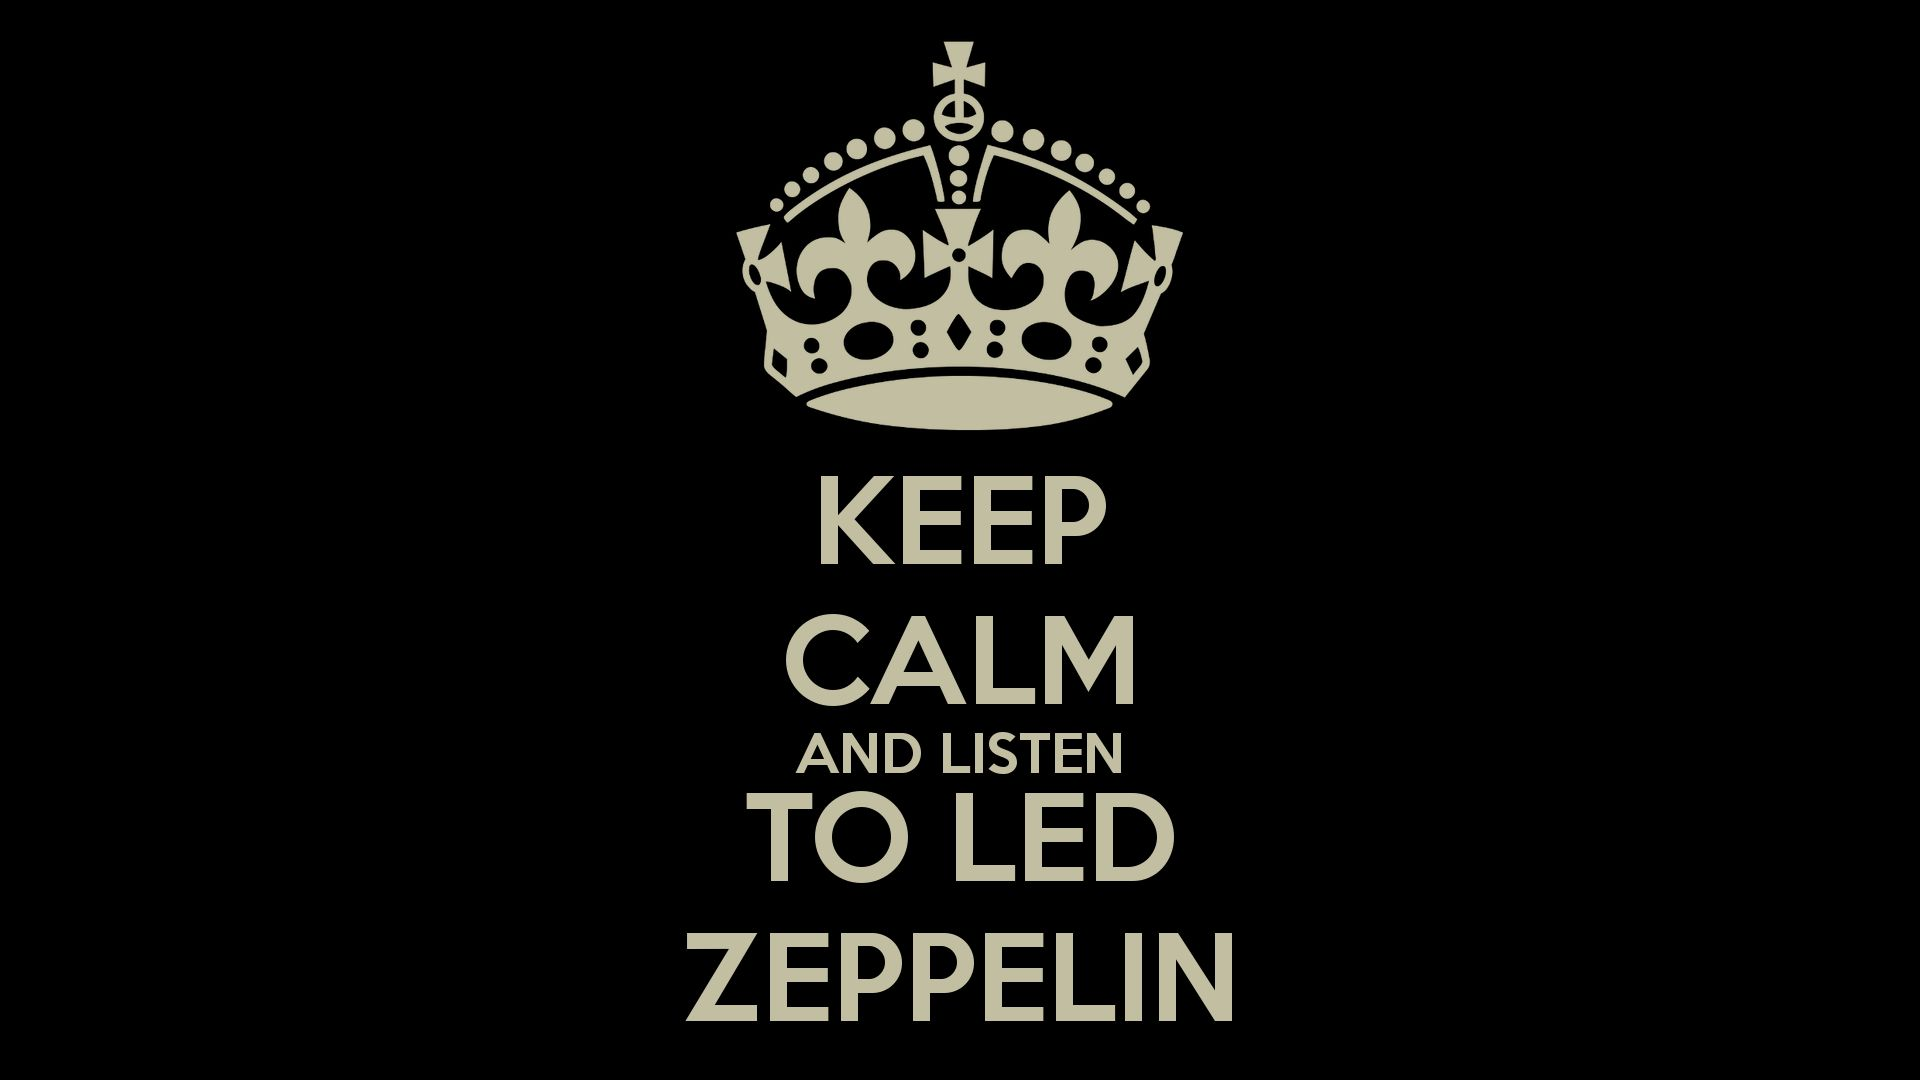 Led Zeppelin Wallpaper Hd Wallpaper Jimmy Page Wallpapers Hd 2943595 Hd Wallpaper Backgrounds Download